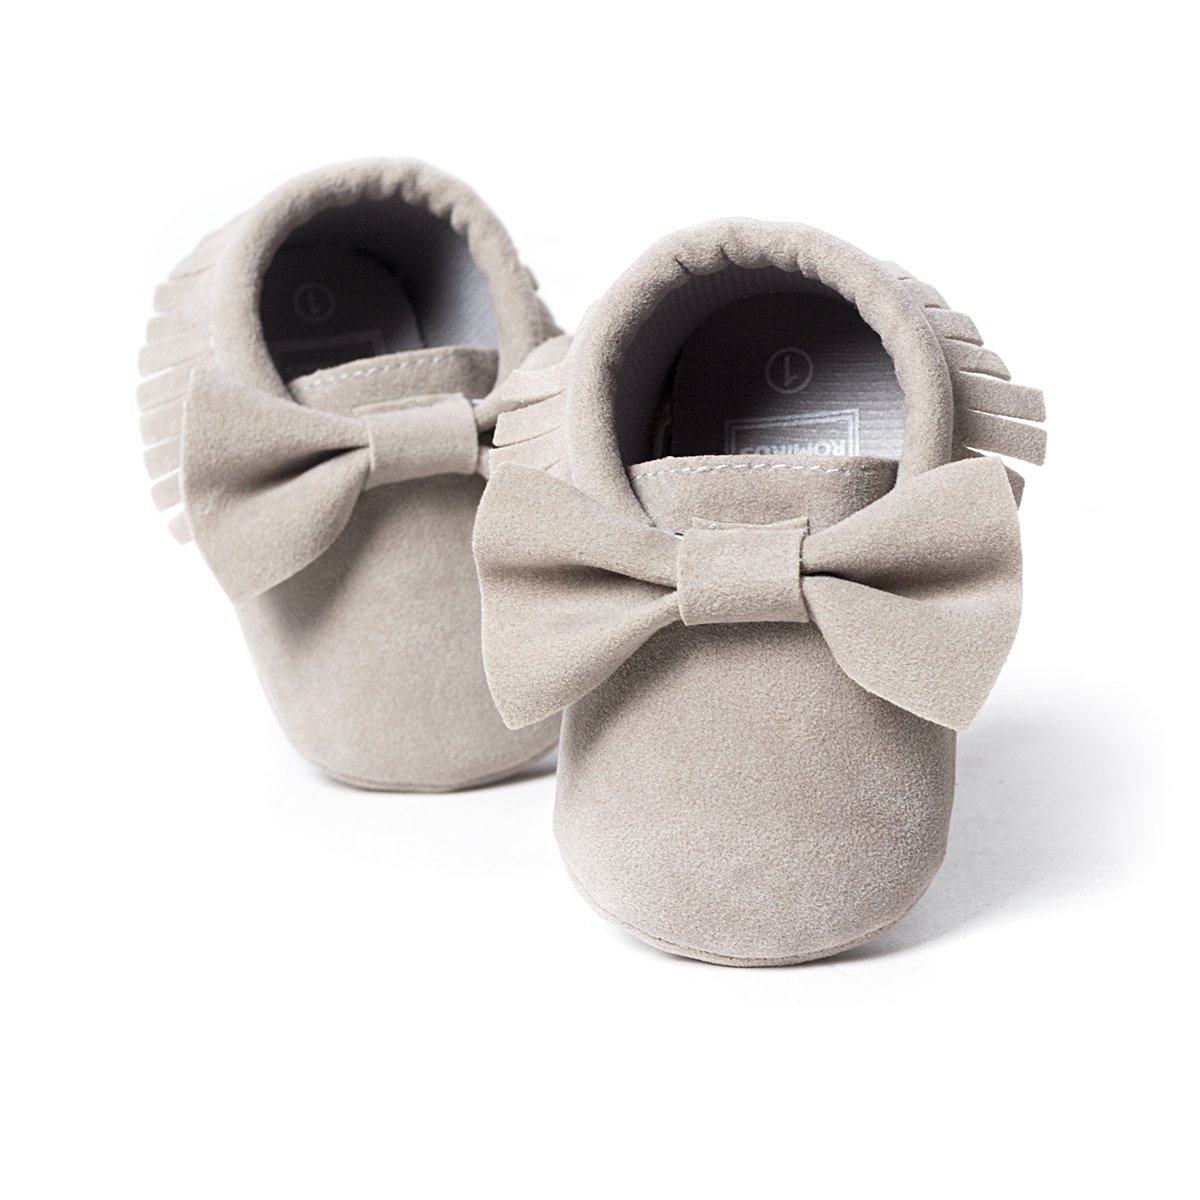 LIVEBOX Infant Baby Girls and Boys Premium Soft Sole Moccasins Tassels Prewalker Anti-Slip Toddler Shoes (S: 0~6 Months, Bow-Light Grey) by LIVEBOX (Image #2)